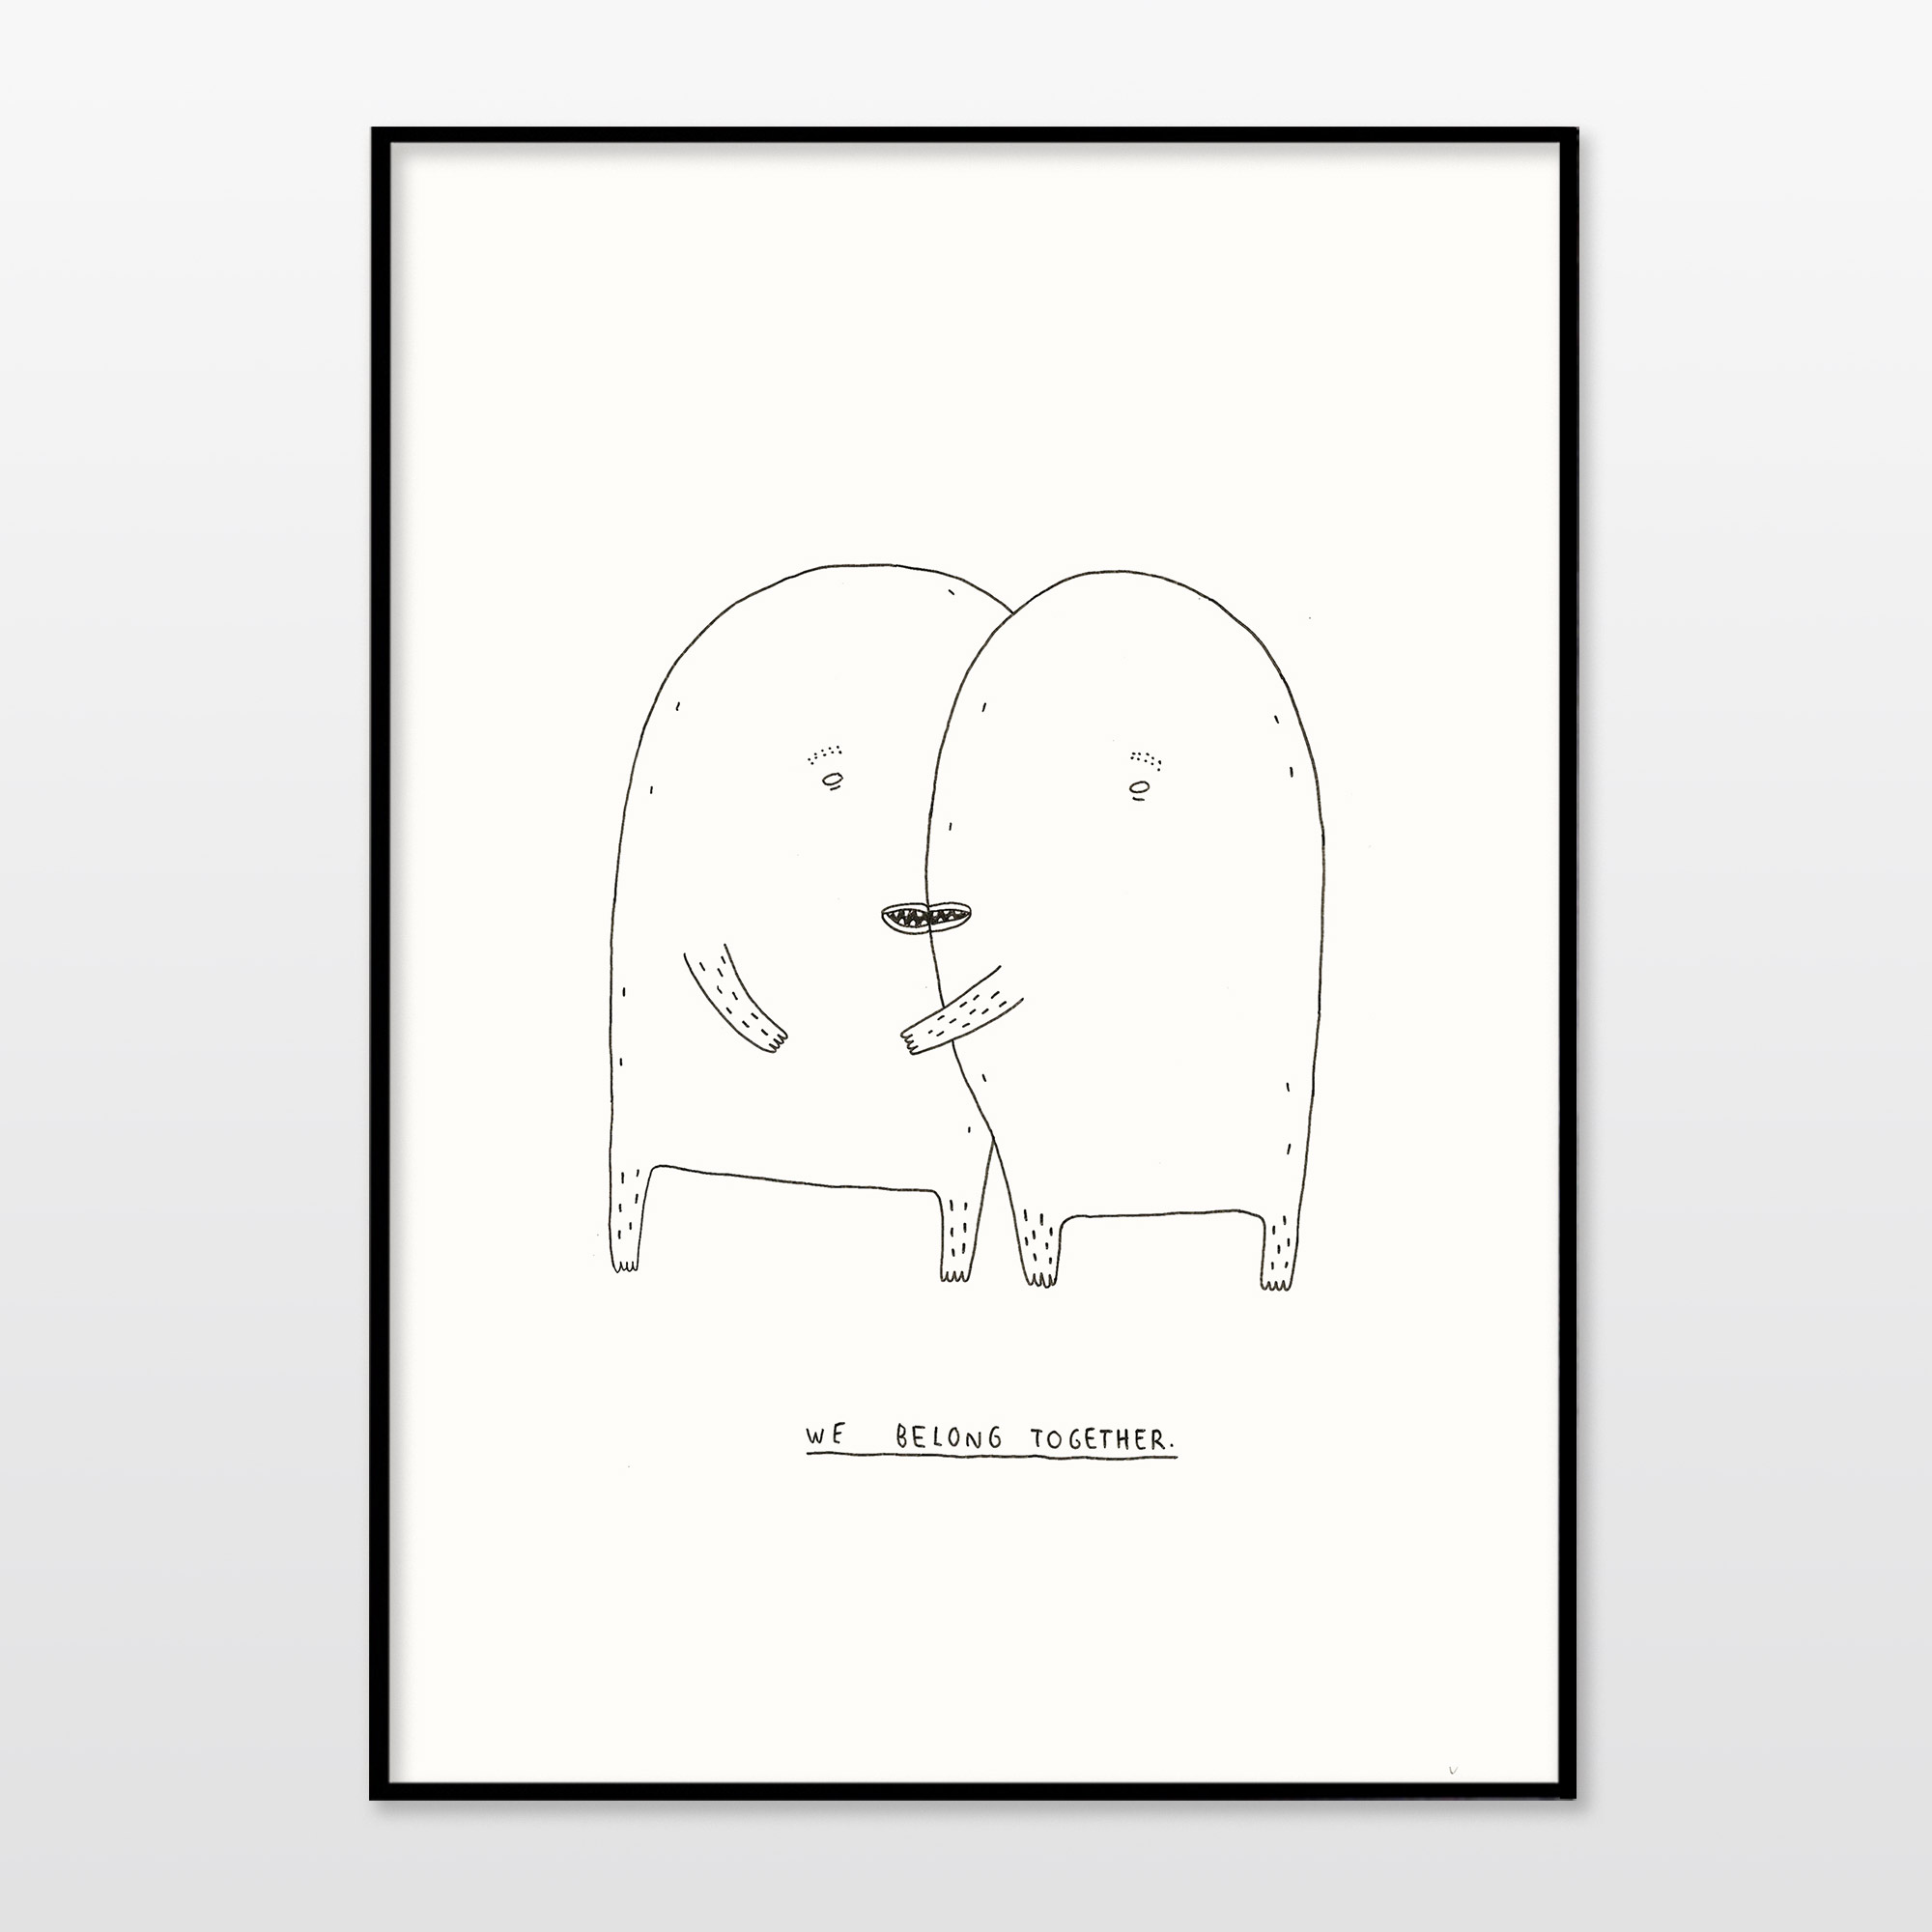 posters-prints, giclee-print, family-friendly, illustrative, minimalistic, children, moods, people, black, white, paper, black-and-white, cute, danish, design, interior, interior-design, love, modern, modern-art, nordic, posters, prints, scandinavien, Buy original high quality art. Paintings, drawings, limited edition prints & posters by talented artists.